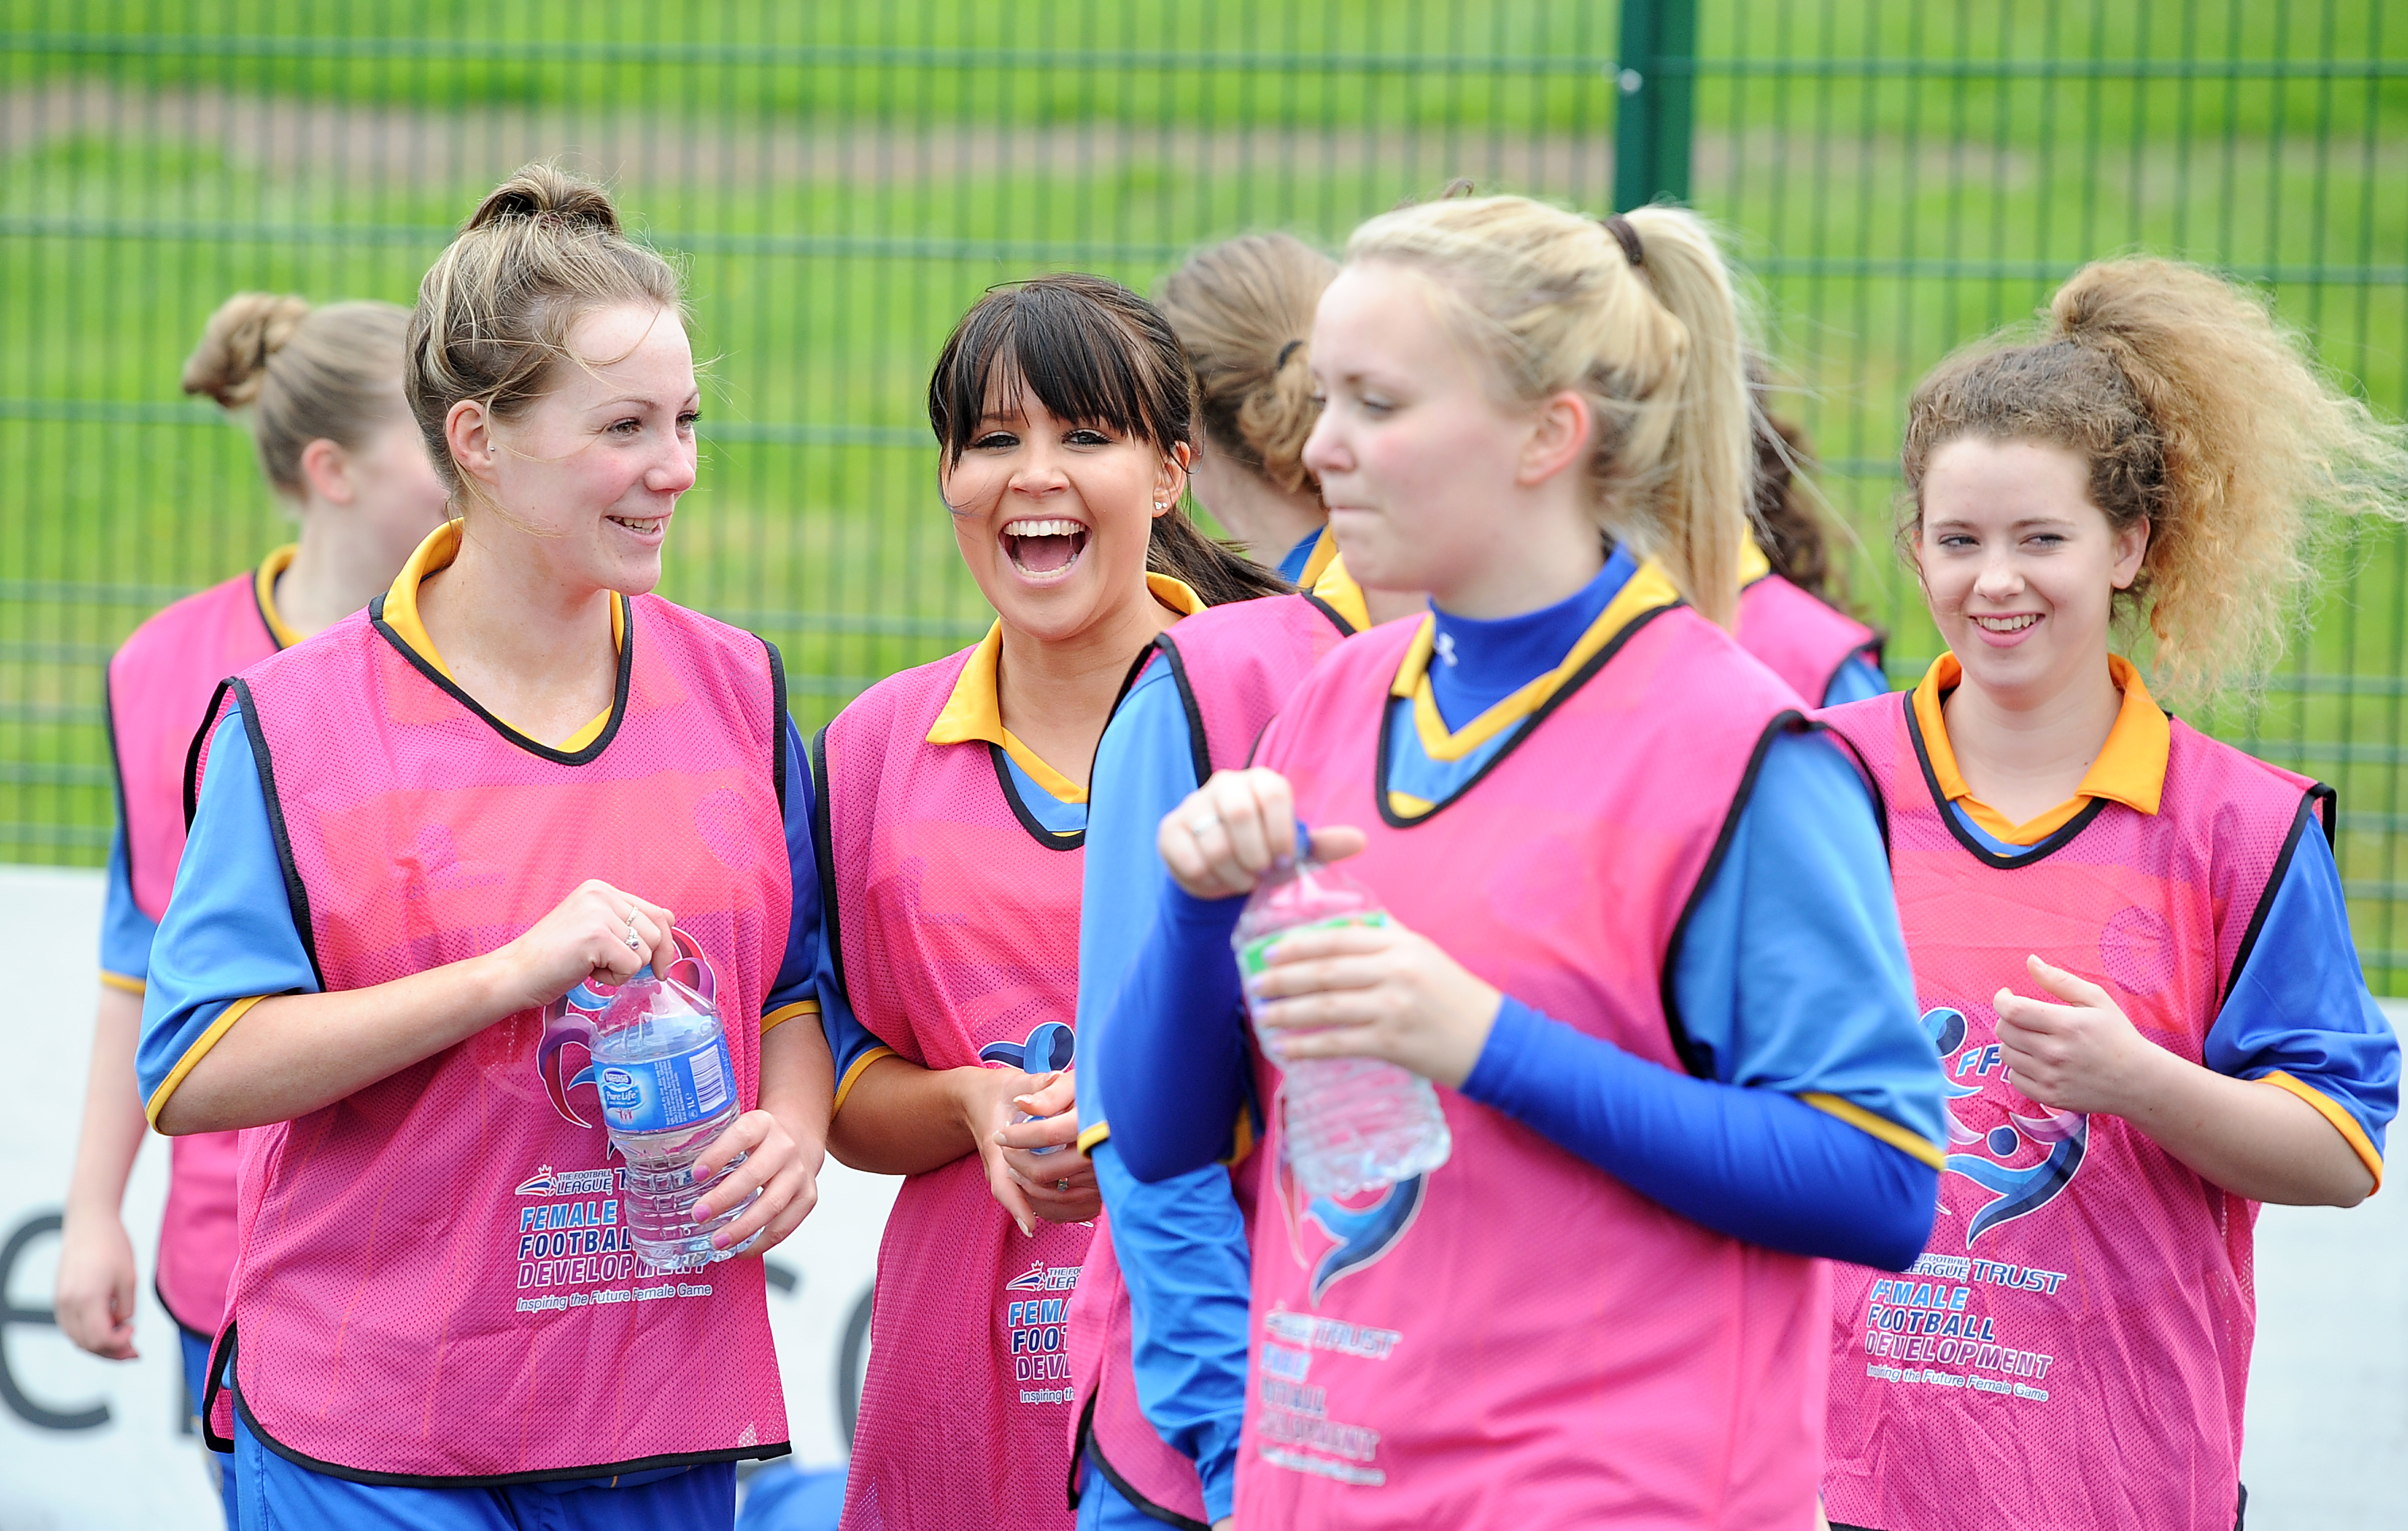 TRUST ROLL OUT FEMALE BACK TO FOOTBALL SESSIONS